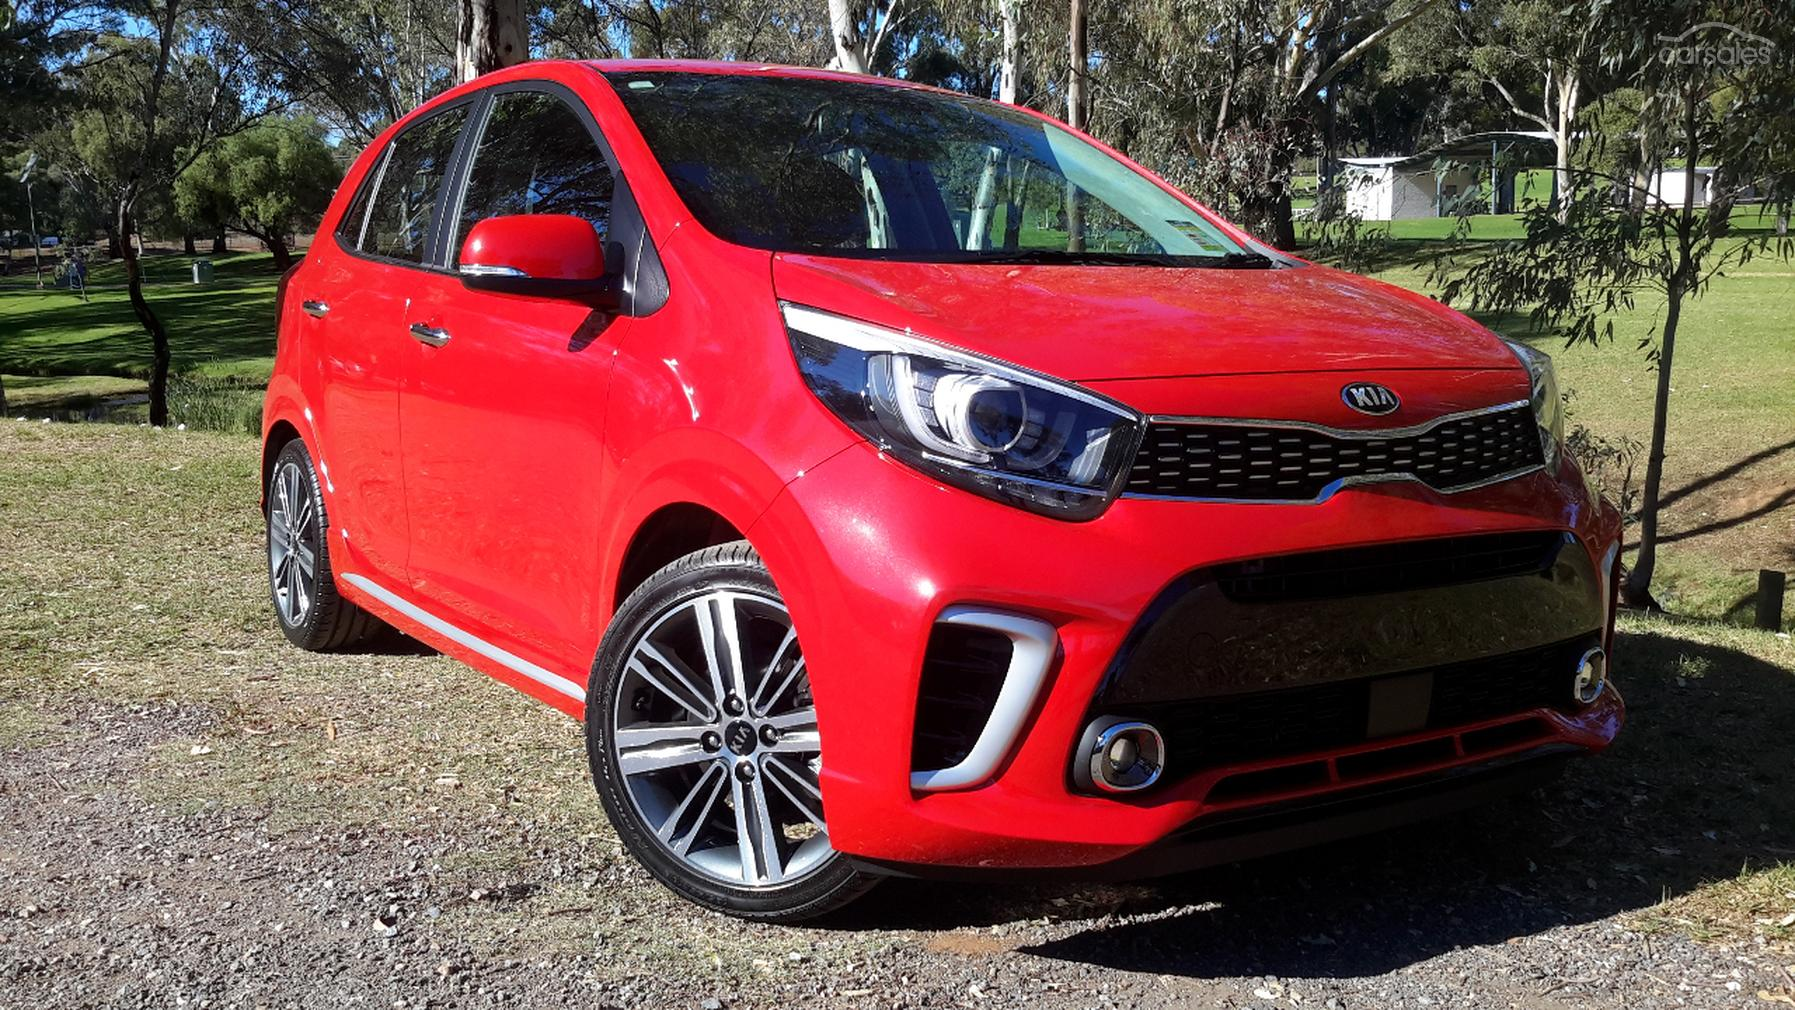 2018 Kia Picanto Gt Line Auto My18 Oag Ad 15917688 2013 Sorento Tone Vehicle Wiring Harness For Factory Tow Package